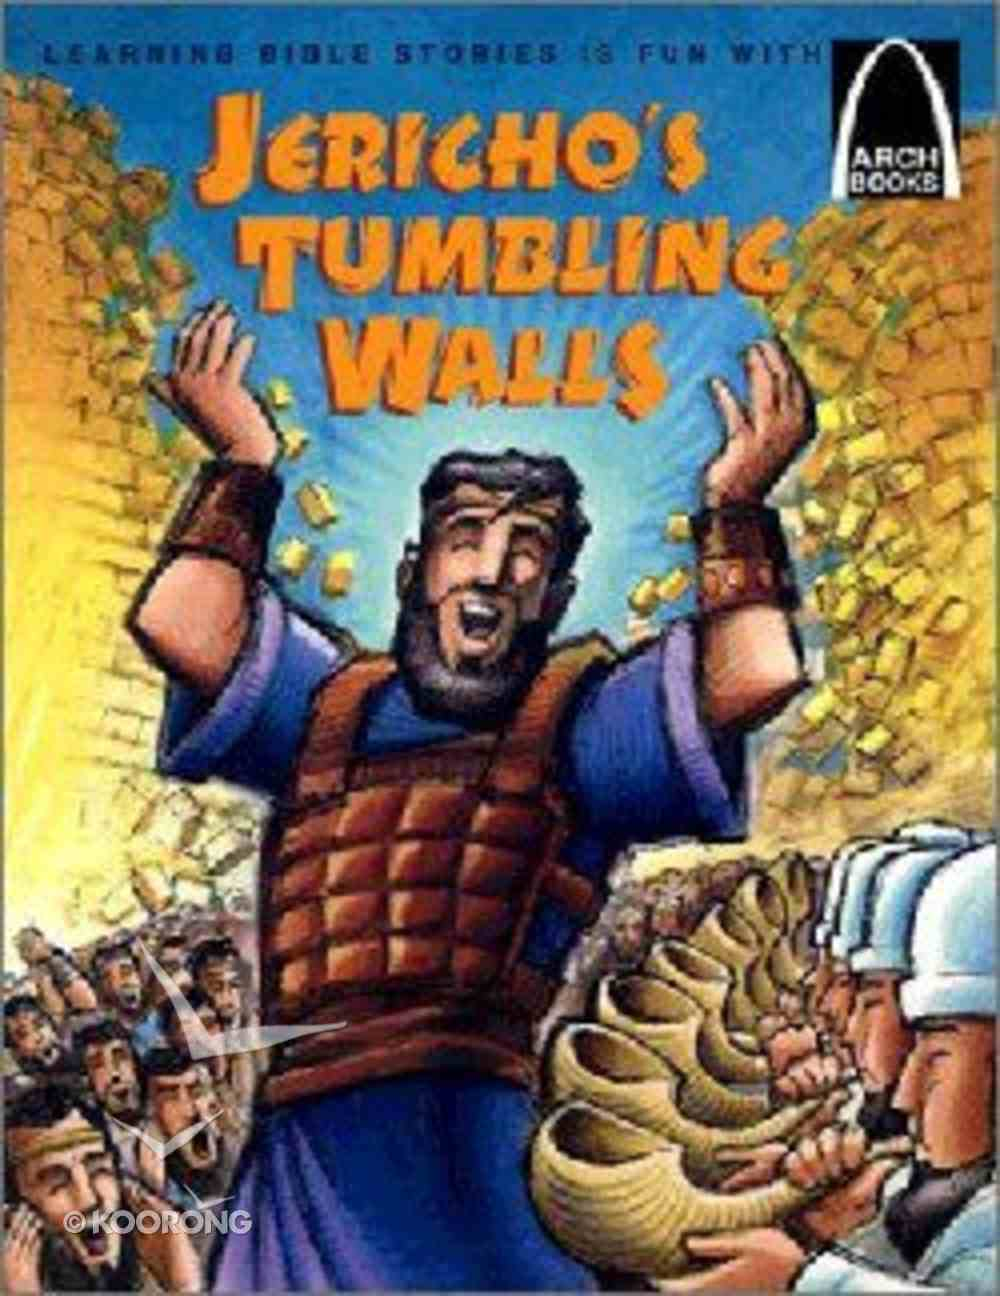 Jericho's Tumbling Walls (Arch Books Series) Paperback